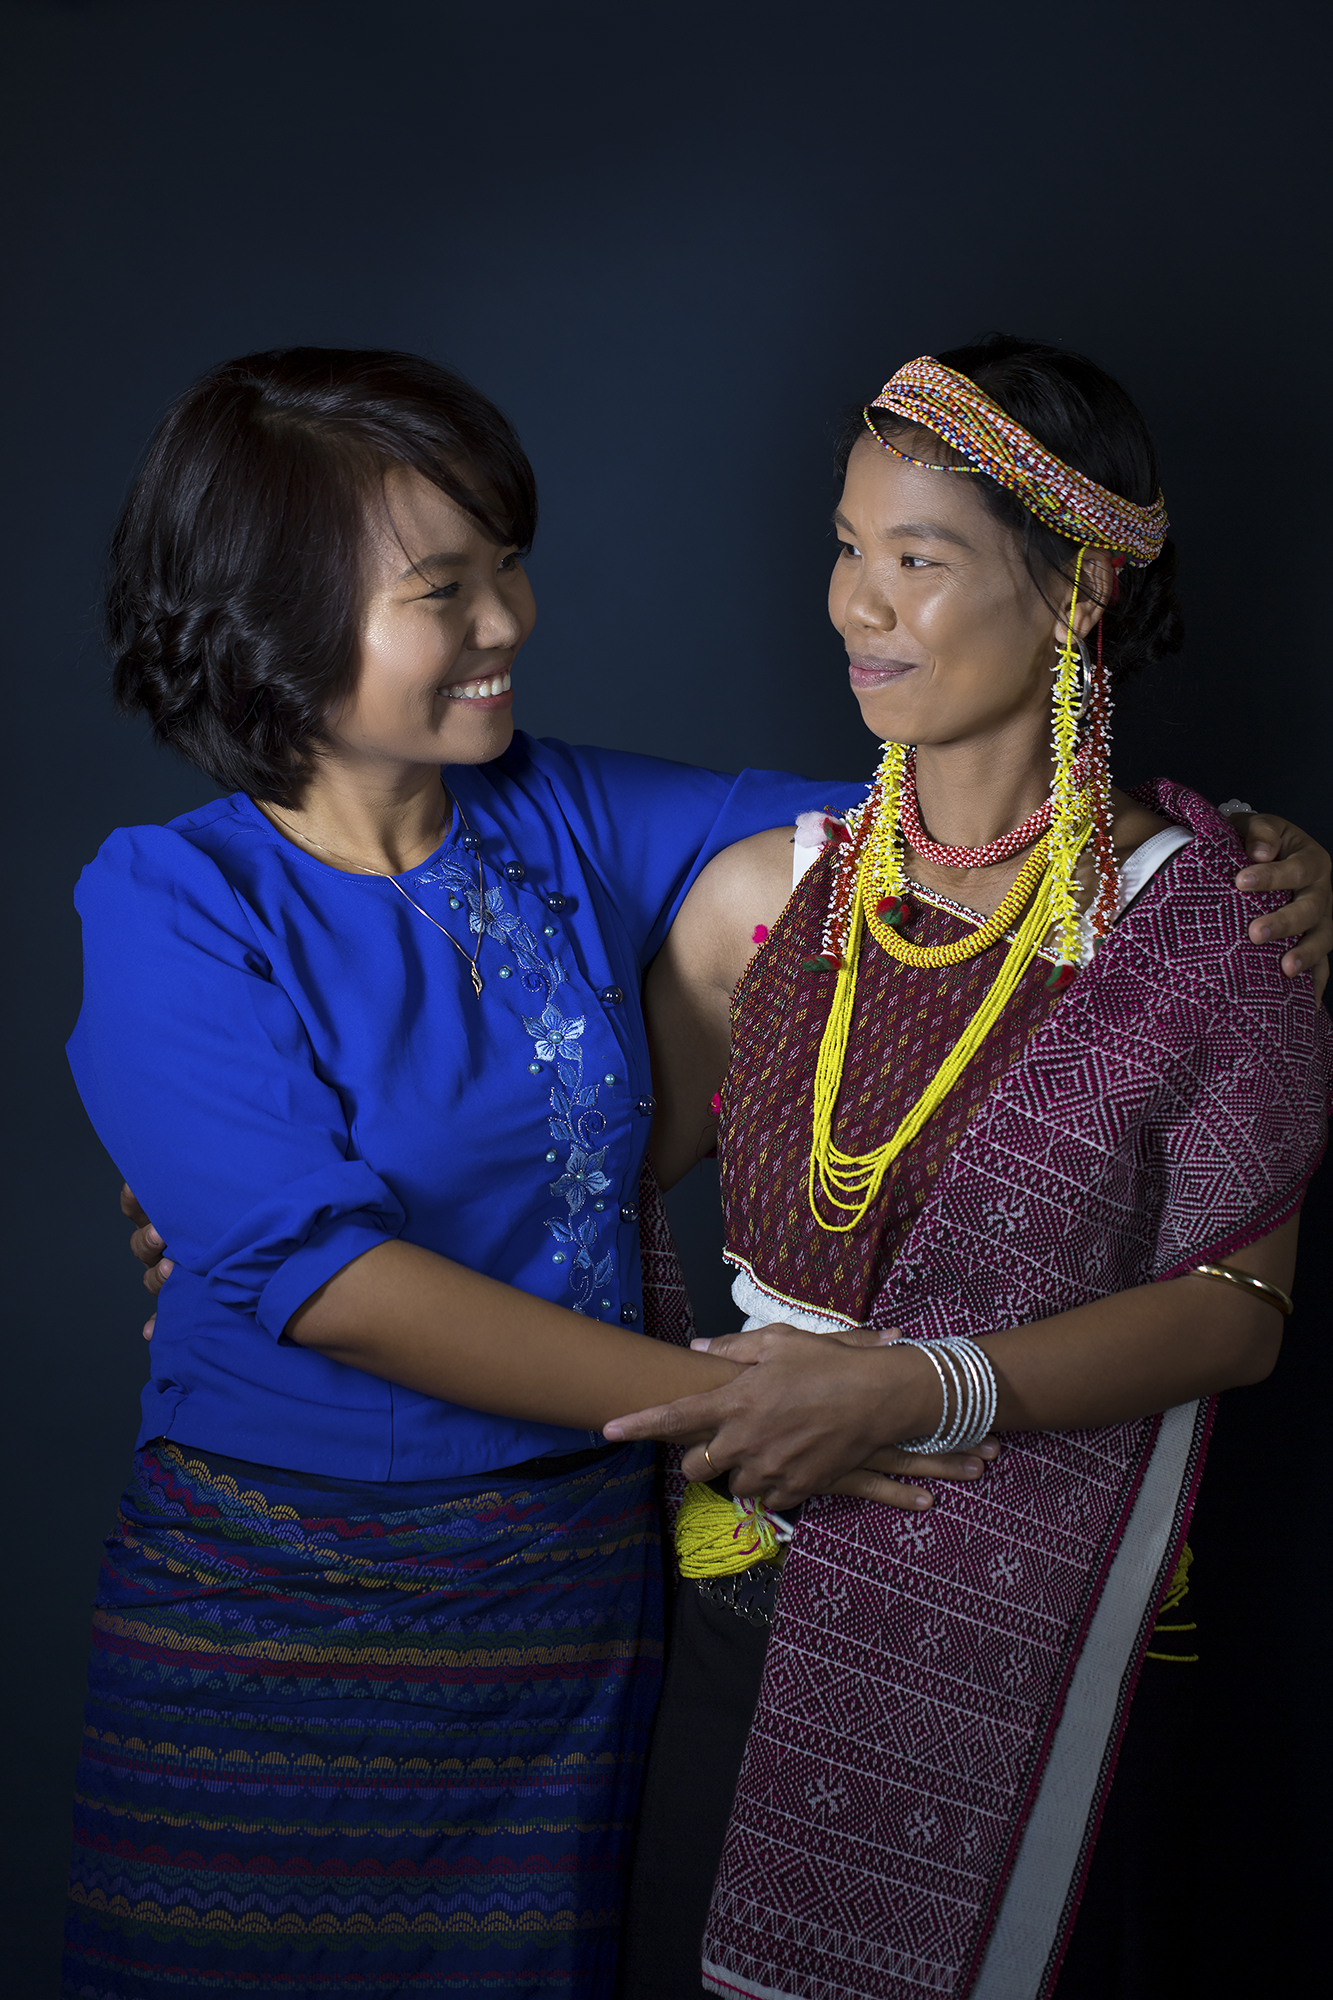 Sangi and Nunu - Myanmar